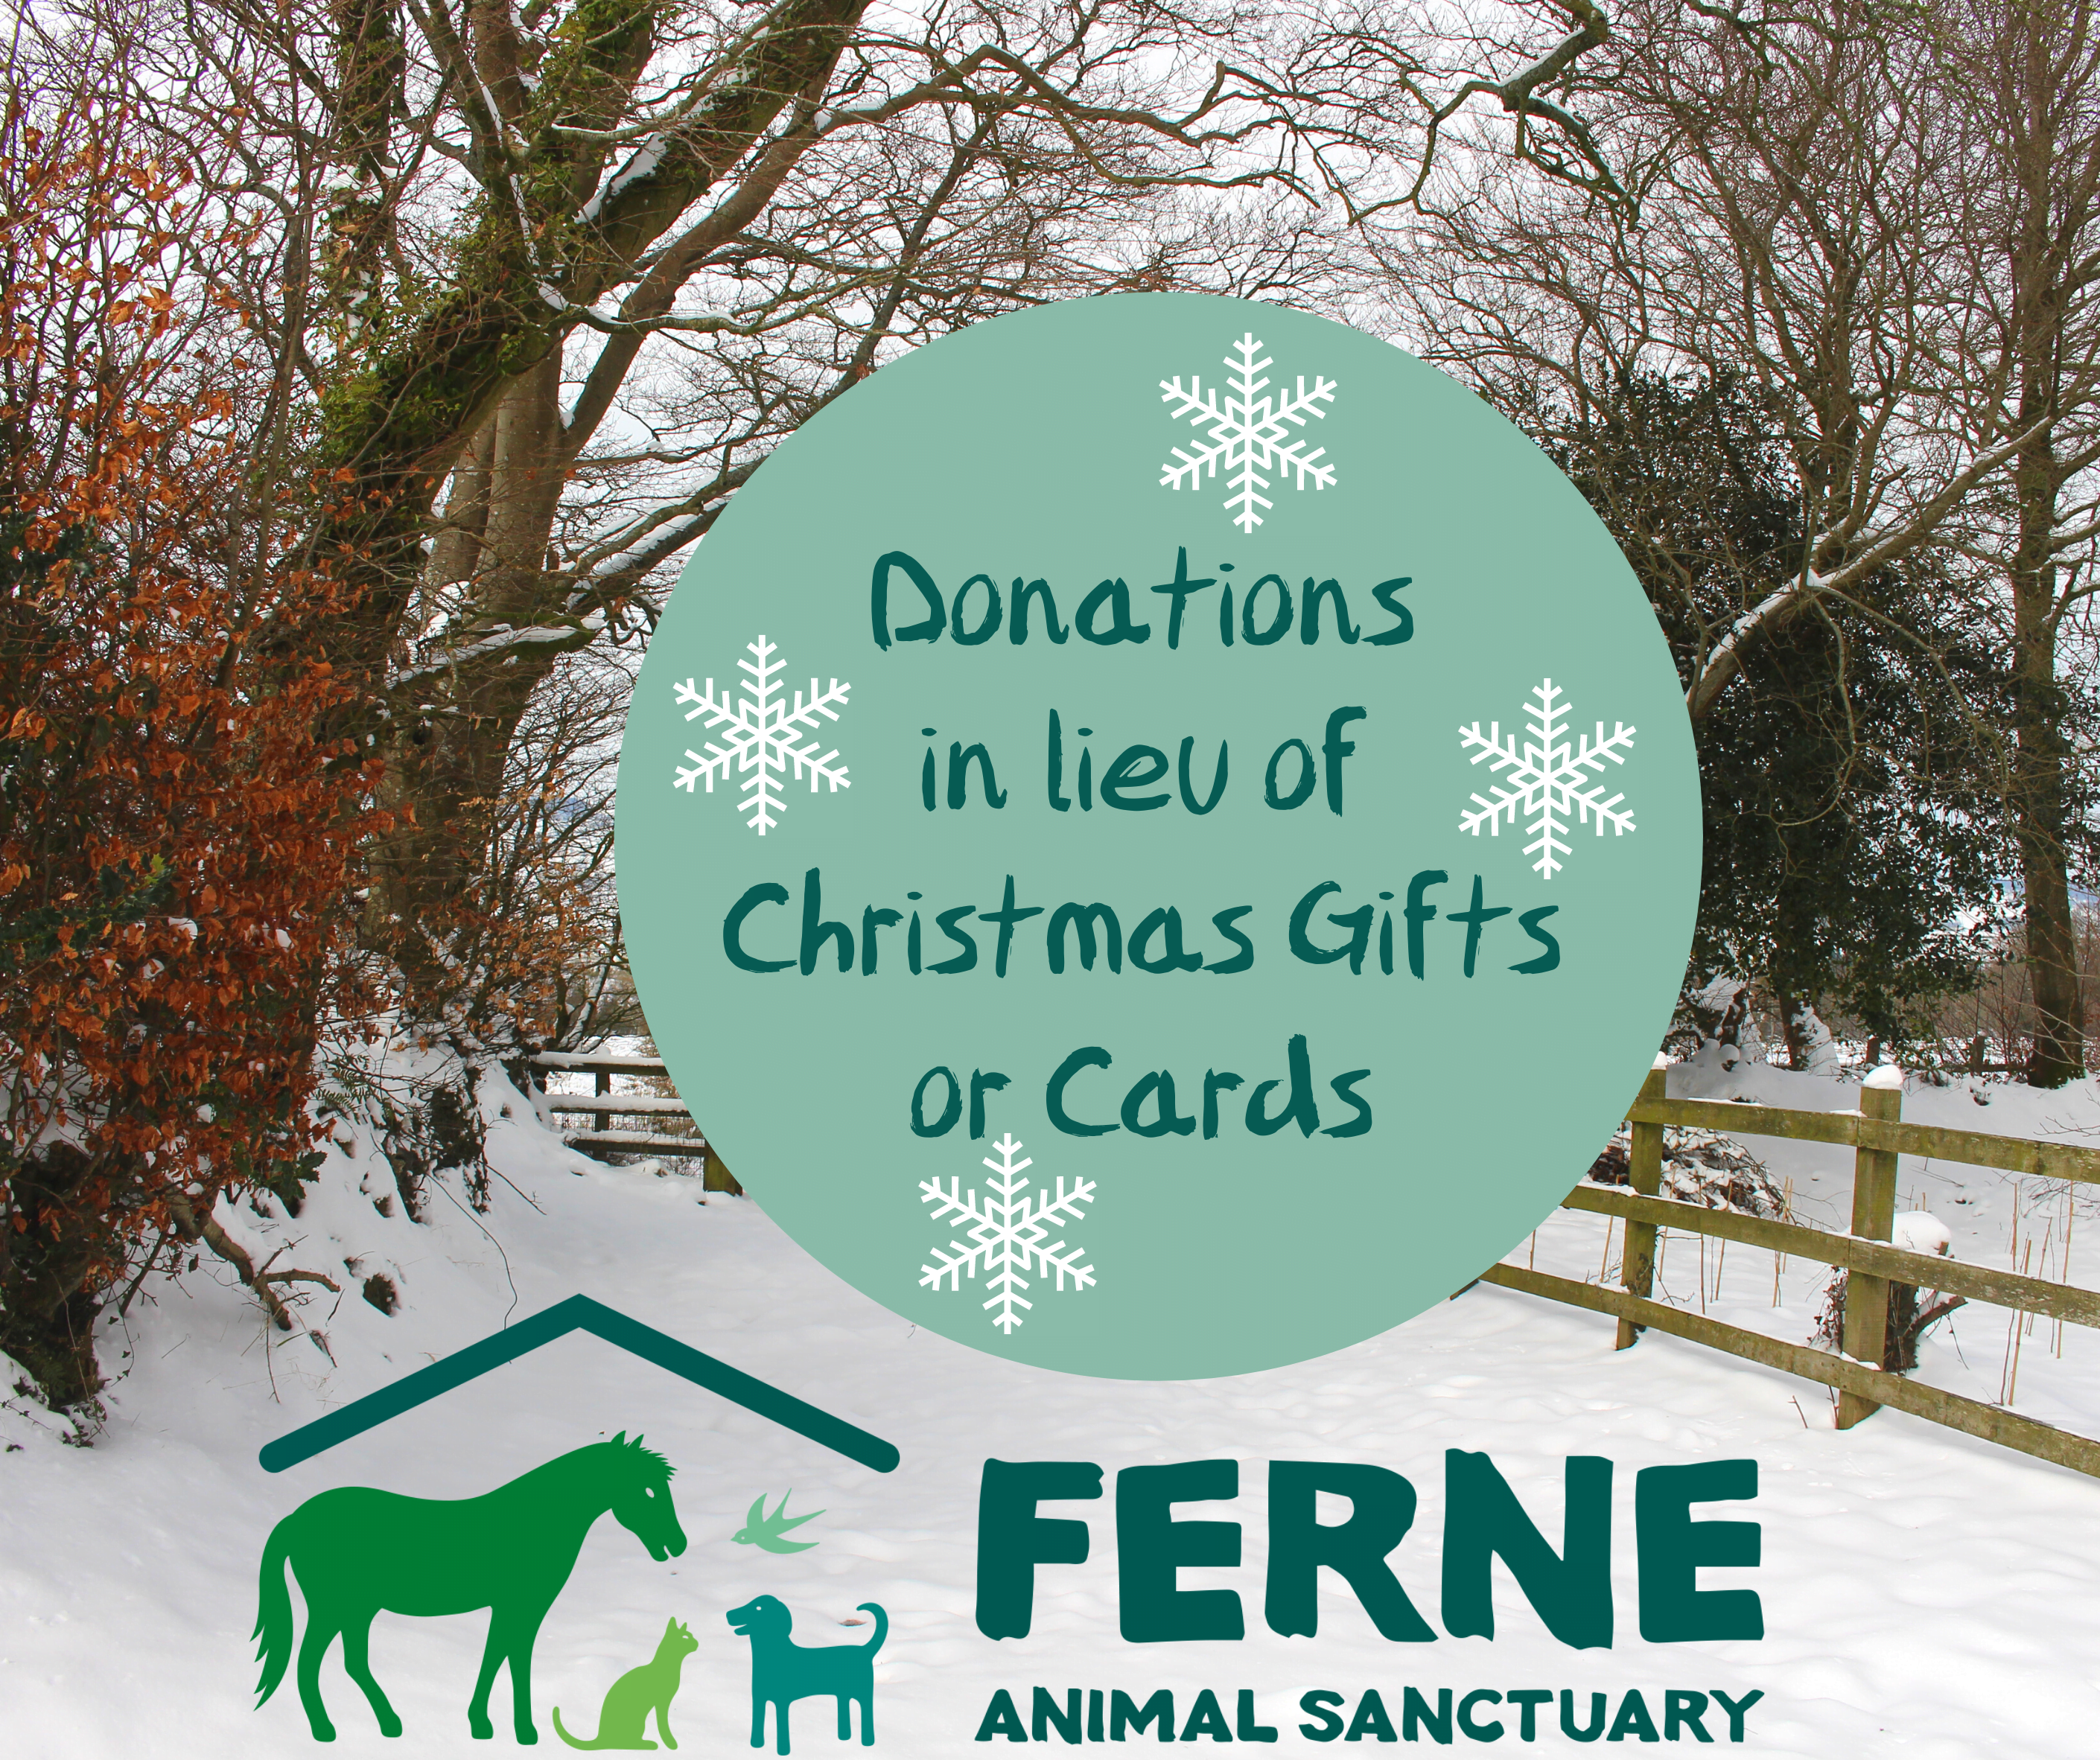 Donations in lieu of Christmas Gifts or Cards